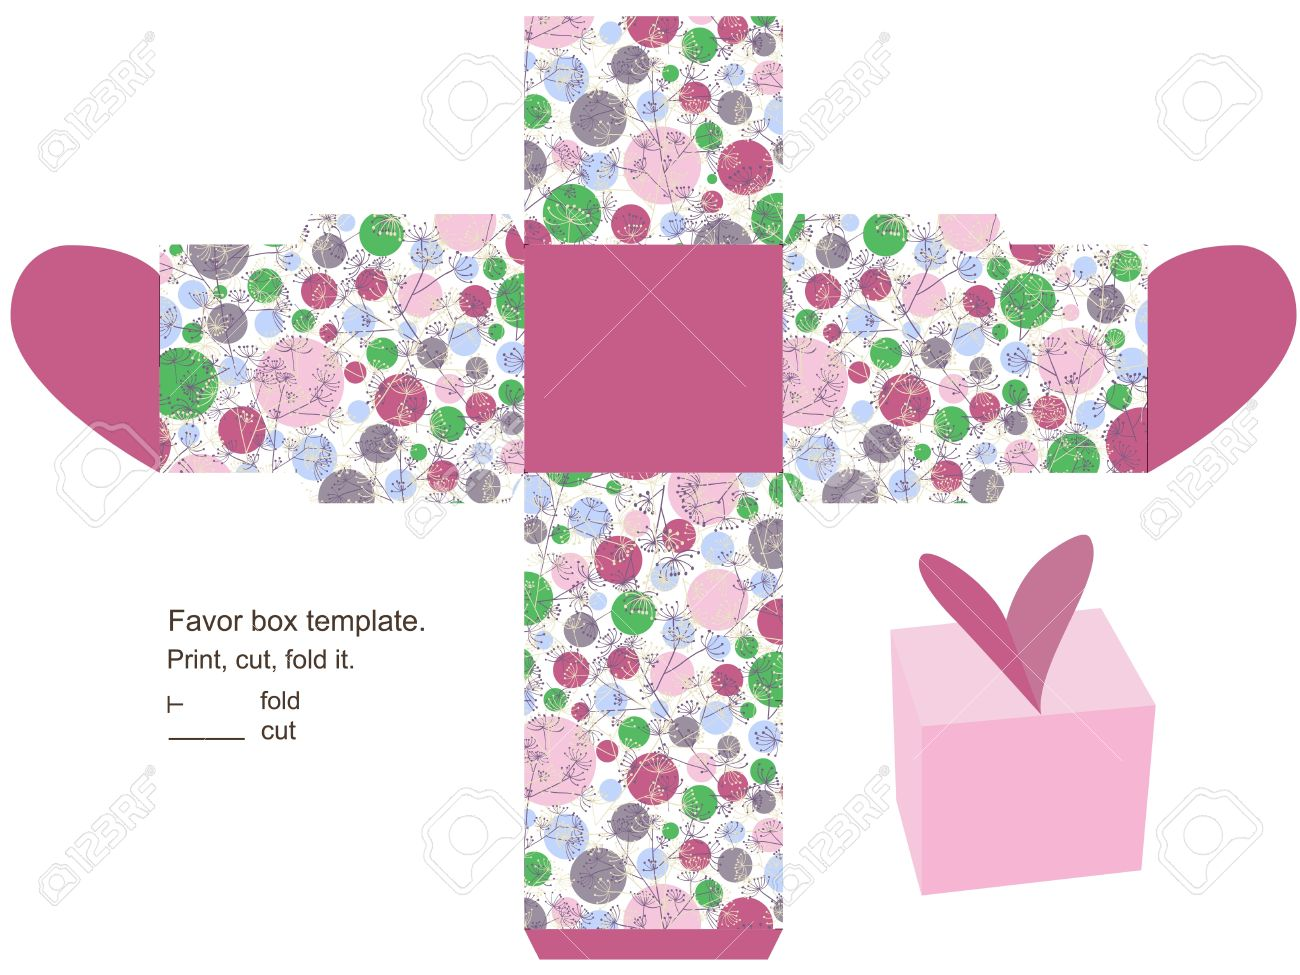 Favor Box Template Floral Pattern With Herbs And Circles Heart